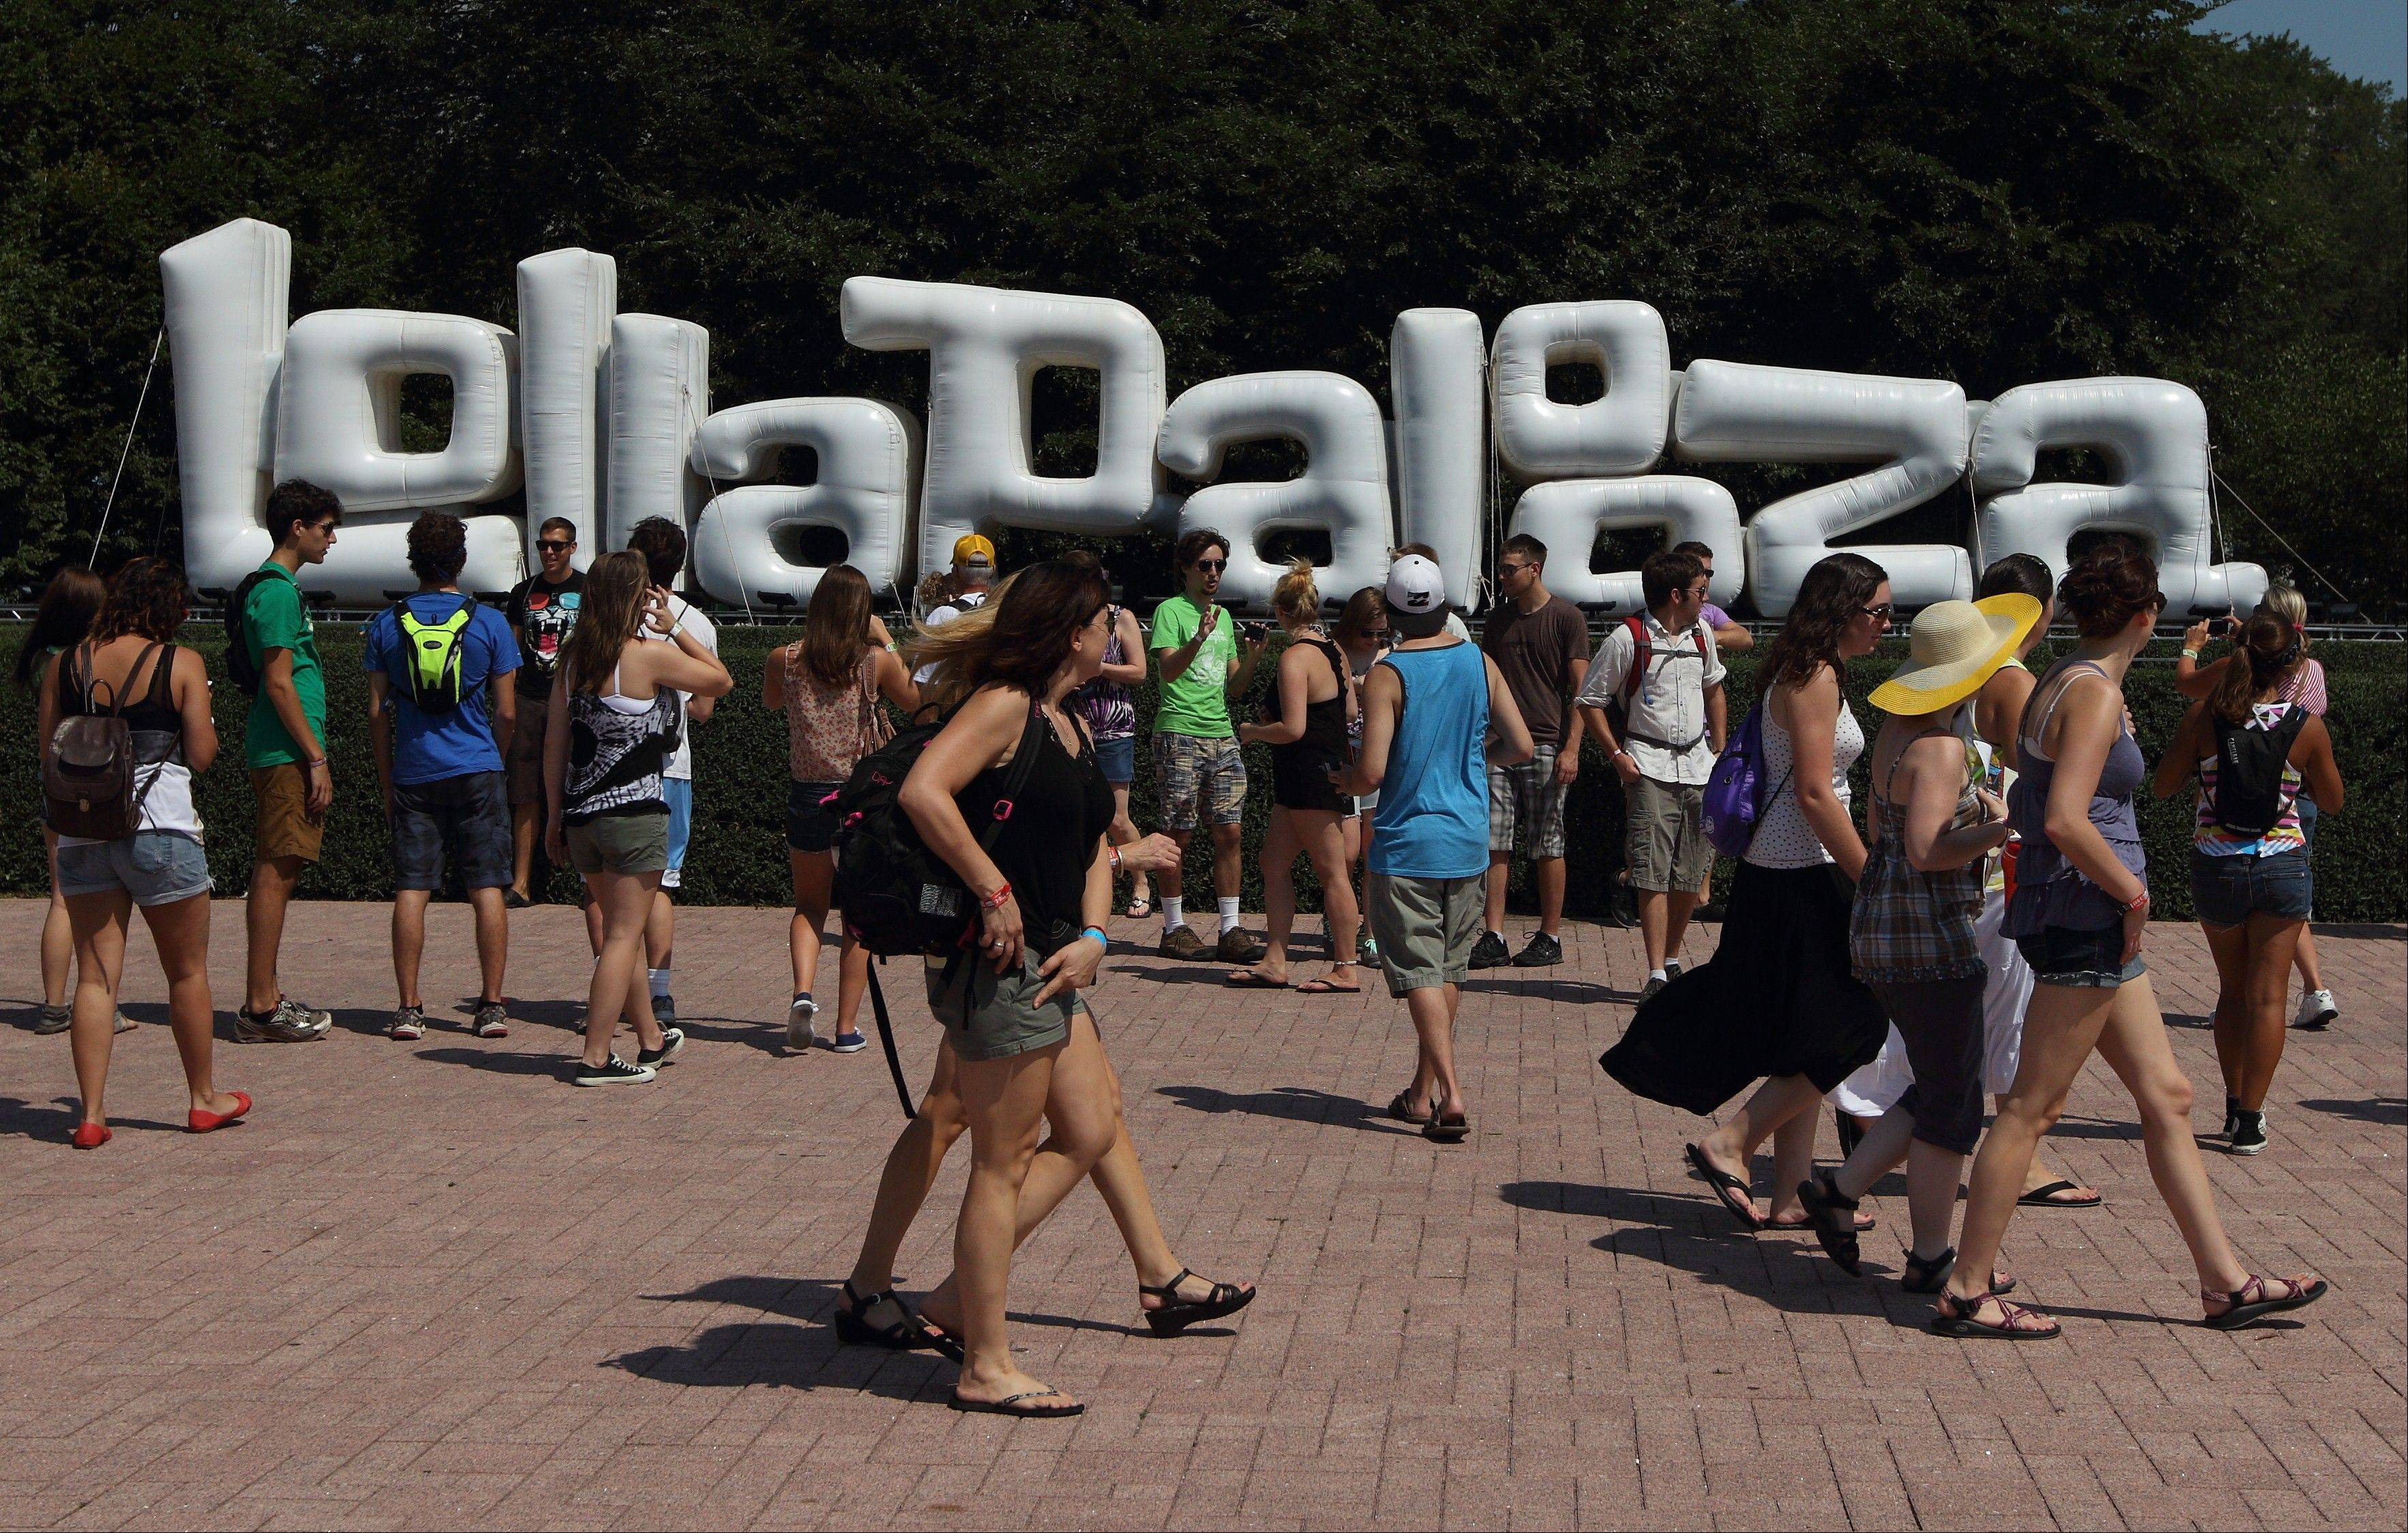 Music fans enter the Lollapalooza music festival in Chicago's Grant Park on Friday, Aug. 3, 2012.